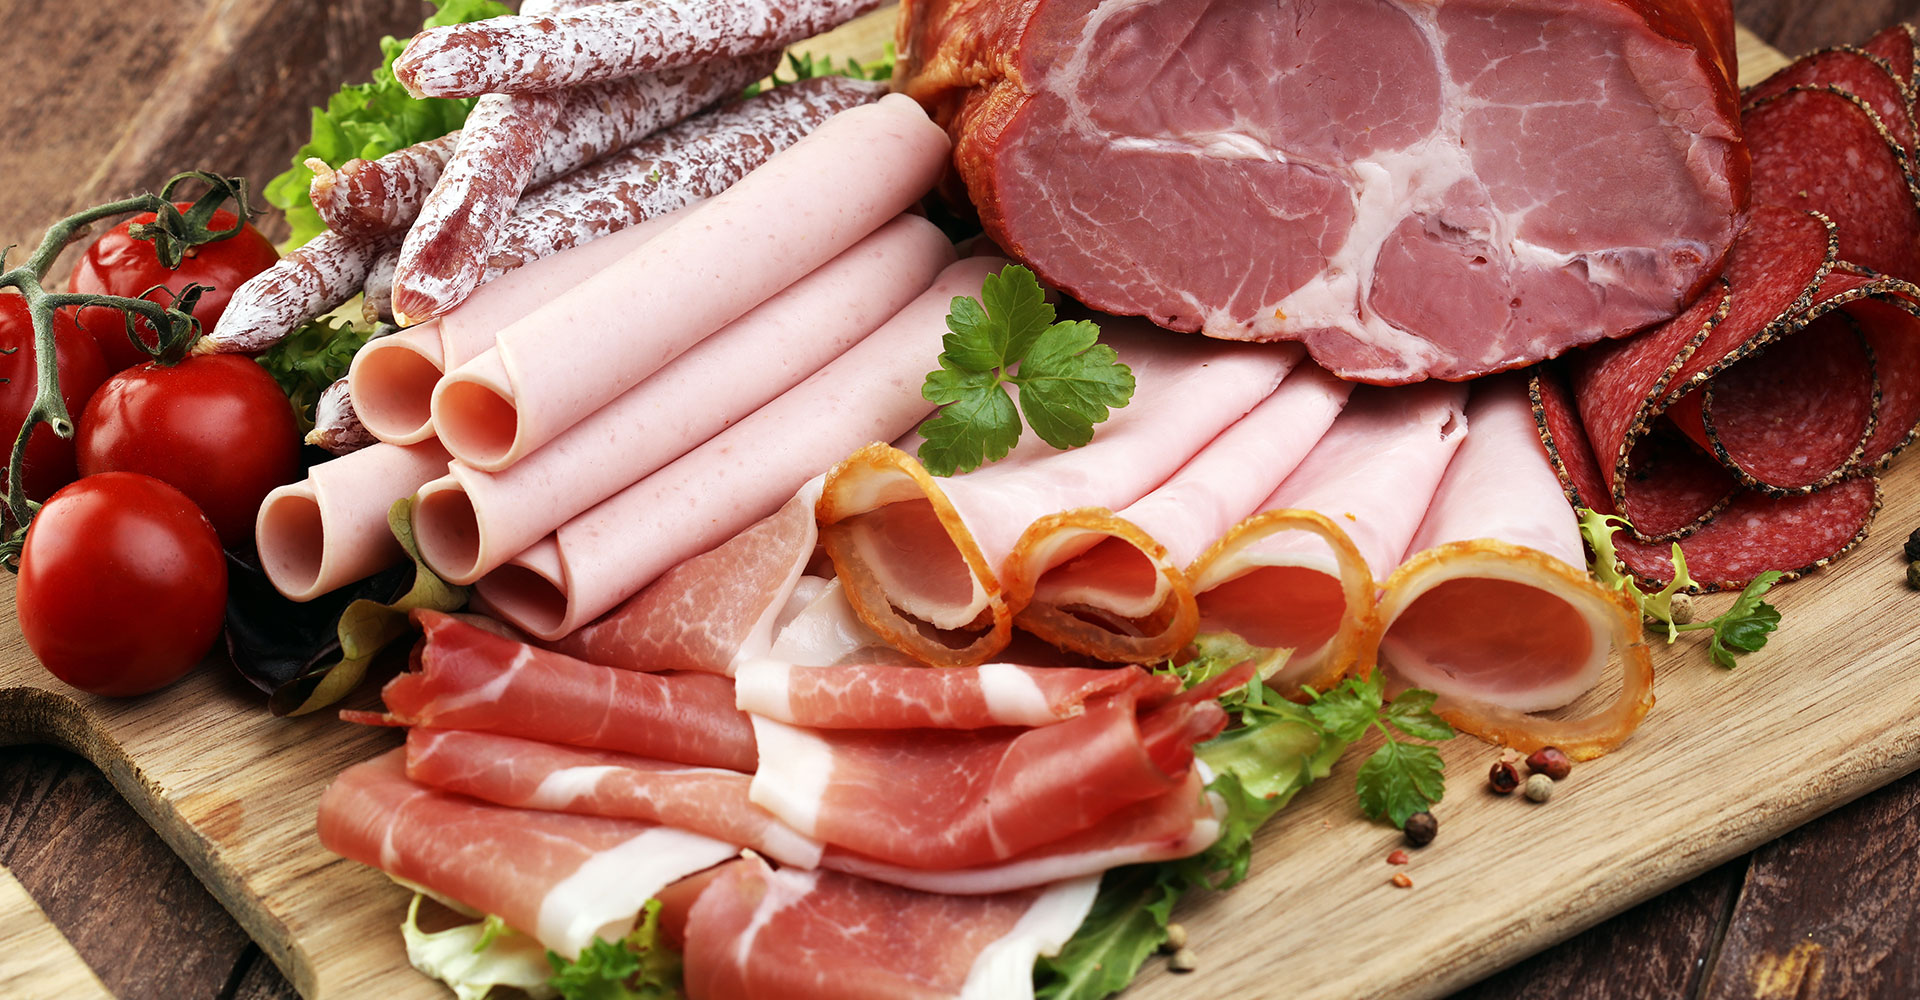 Cooked Meats – G McWilliam Aberdeen Ltd